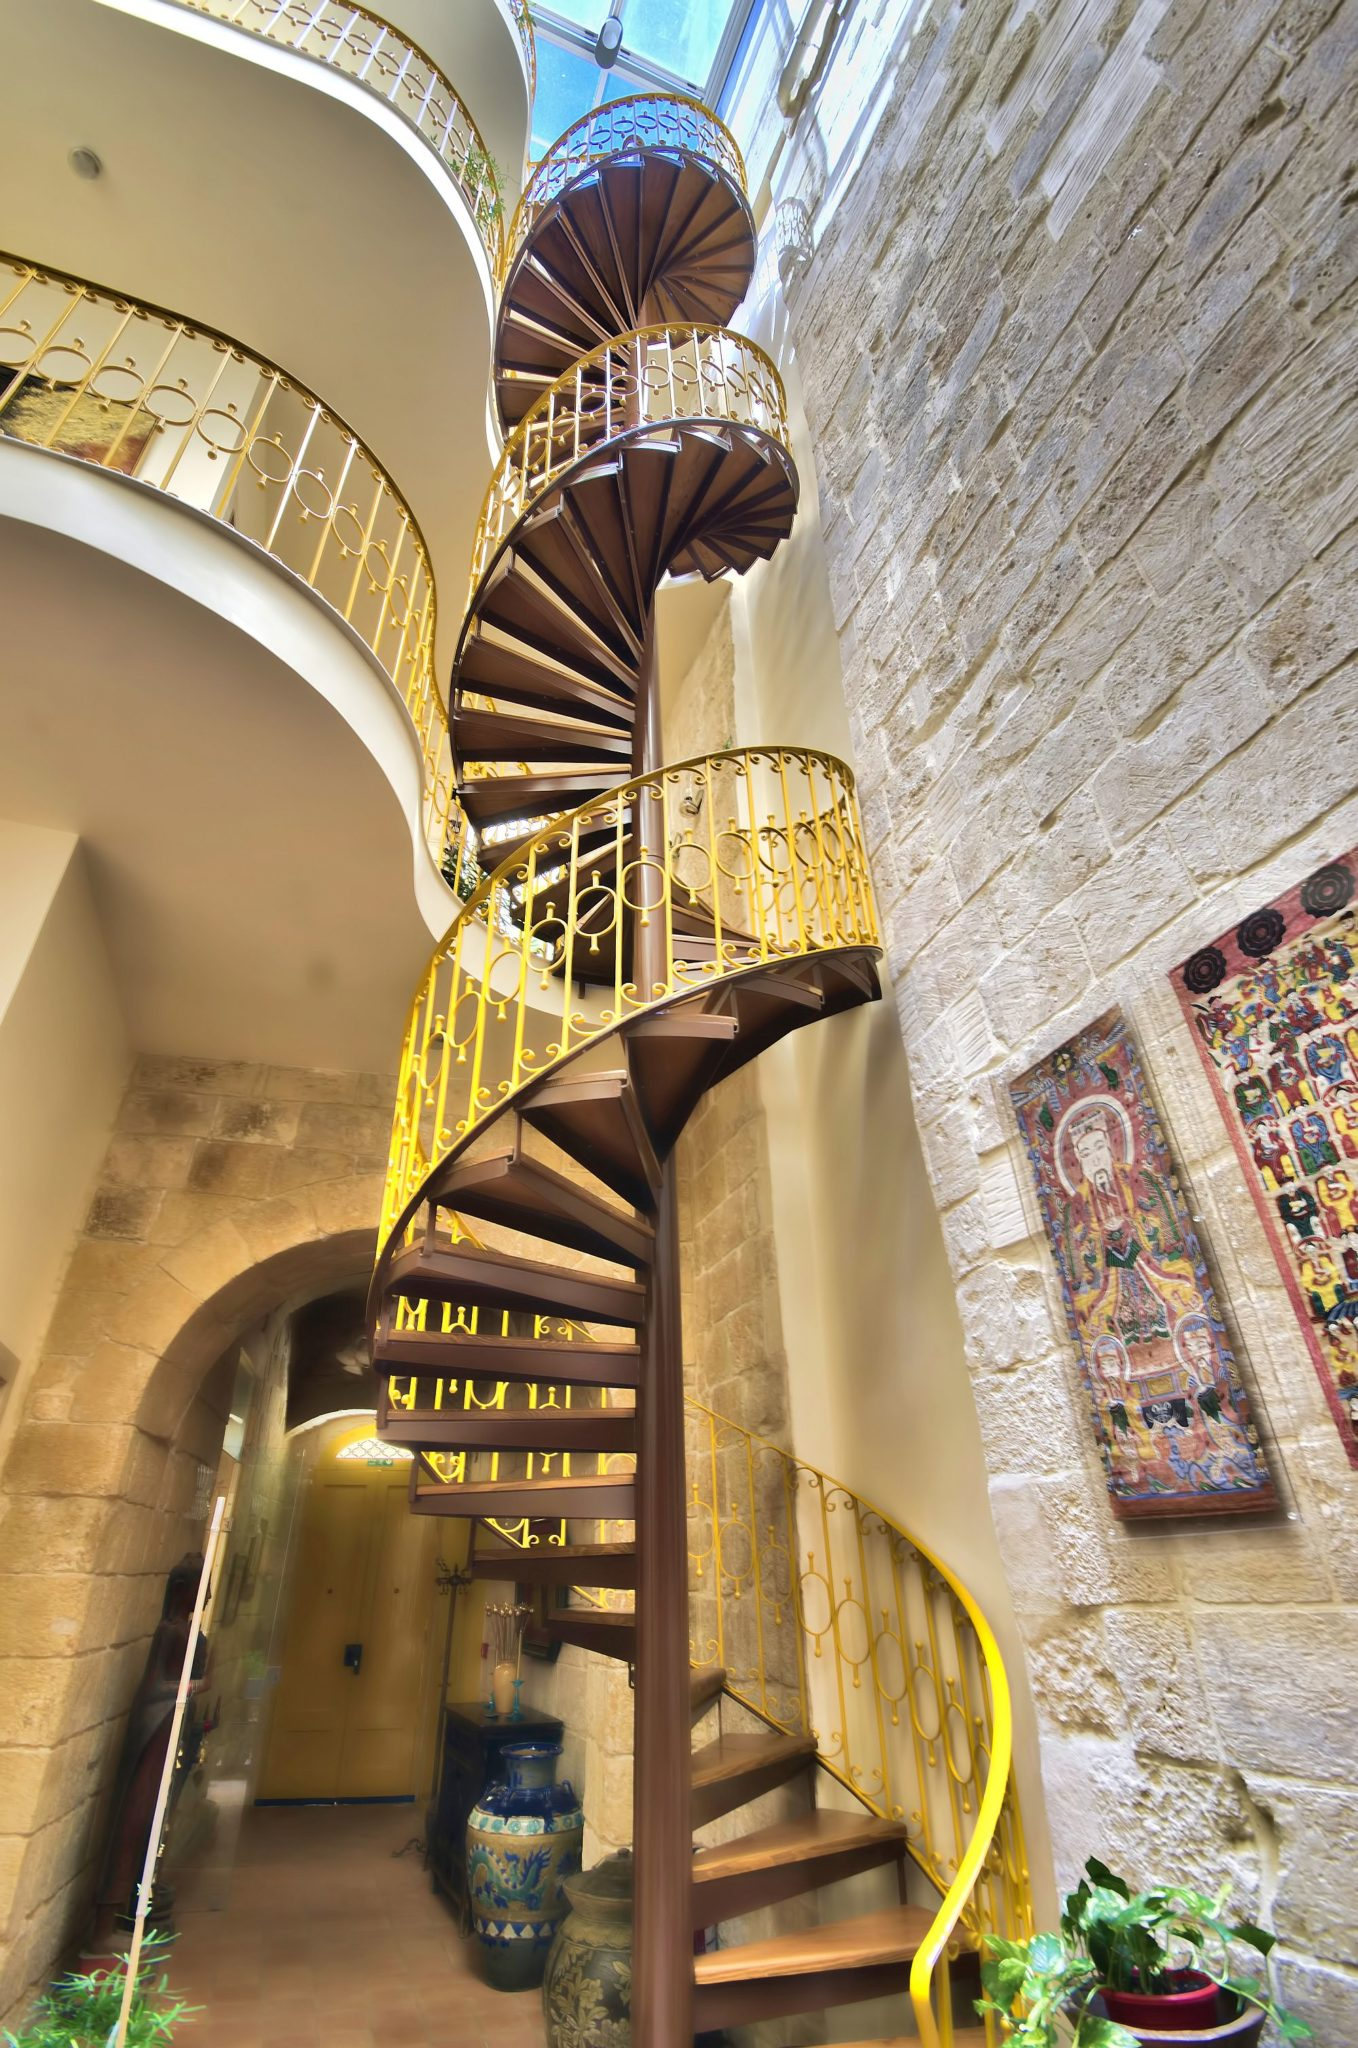 Stunning spiral staircase inside the boutique hotel with a splash of yellow